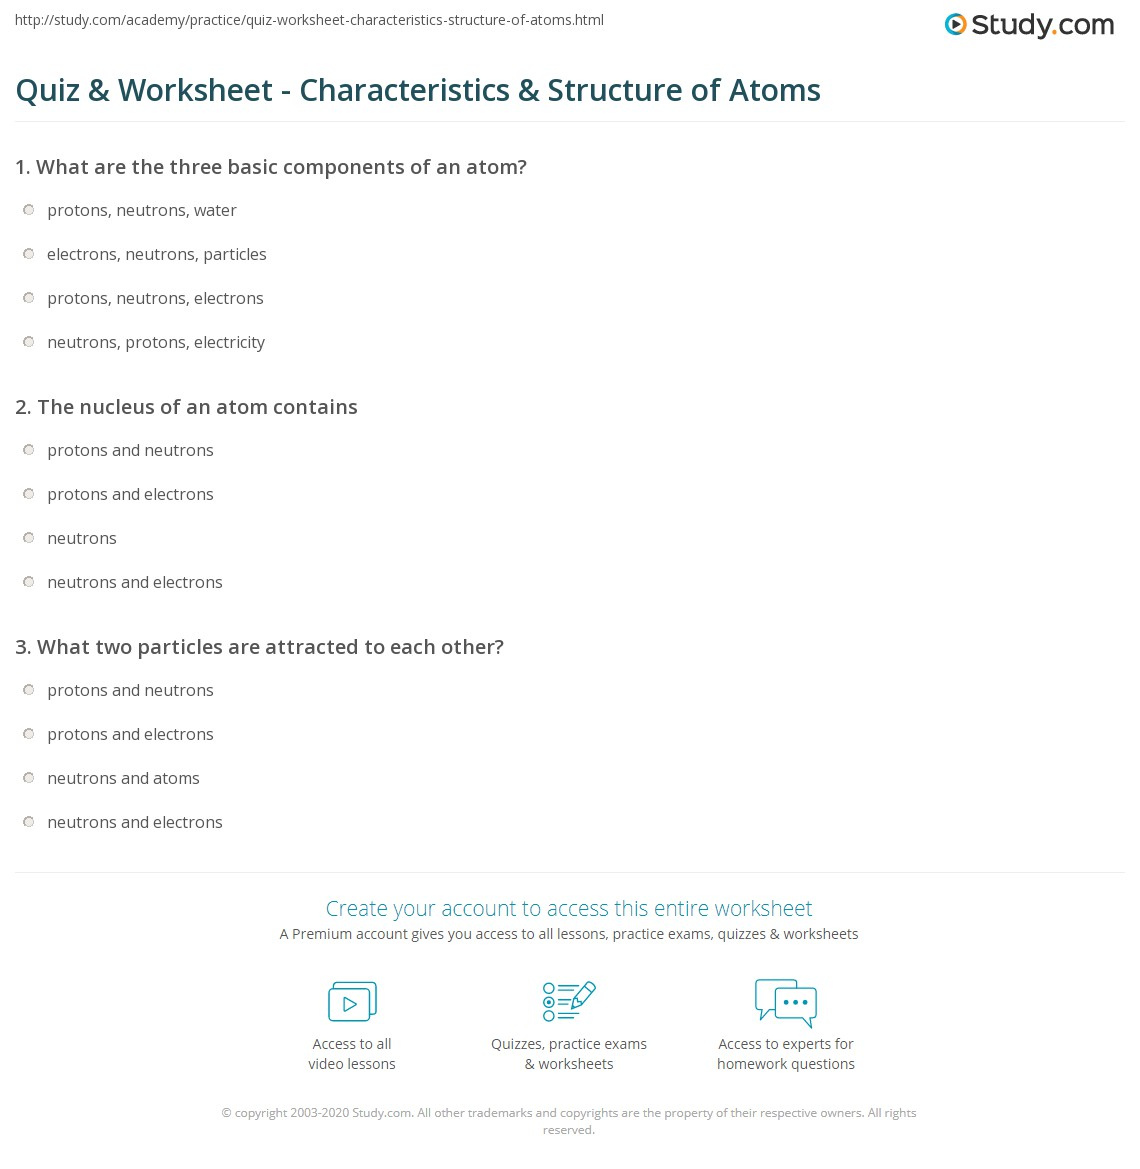 worksheet Calculating Protons Neutrons And Electrons Worksheet quiz worksheet characteristics structure of atoms study com print what are definition worksheet